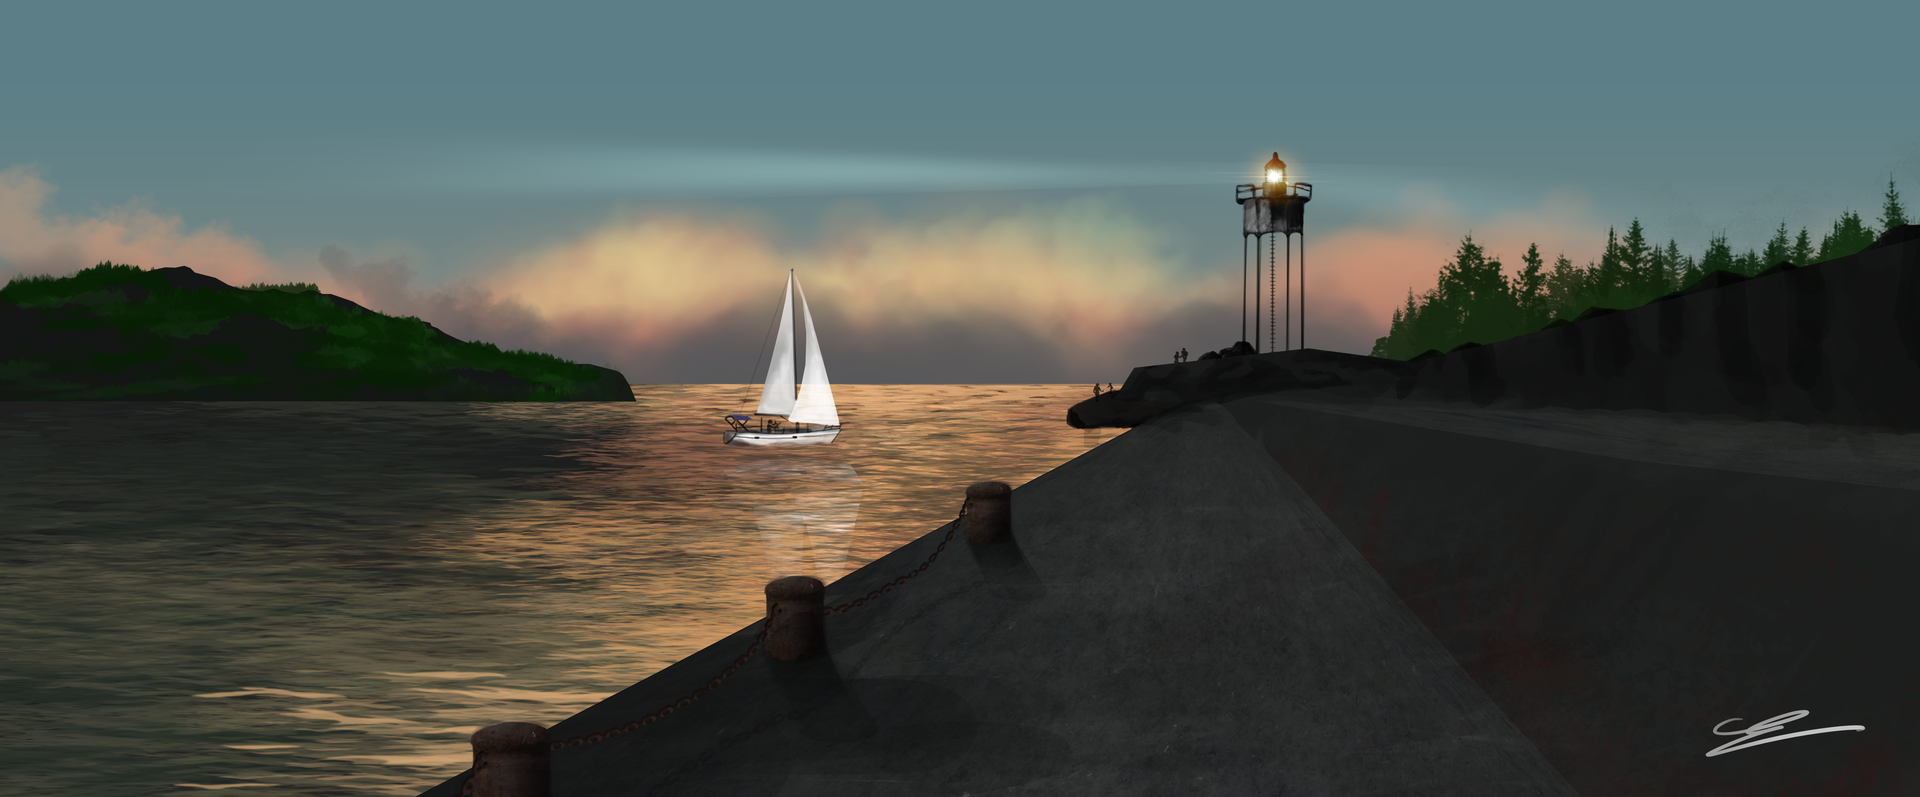 Digital Painting #1 Port-Vendres par Sarnek